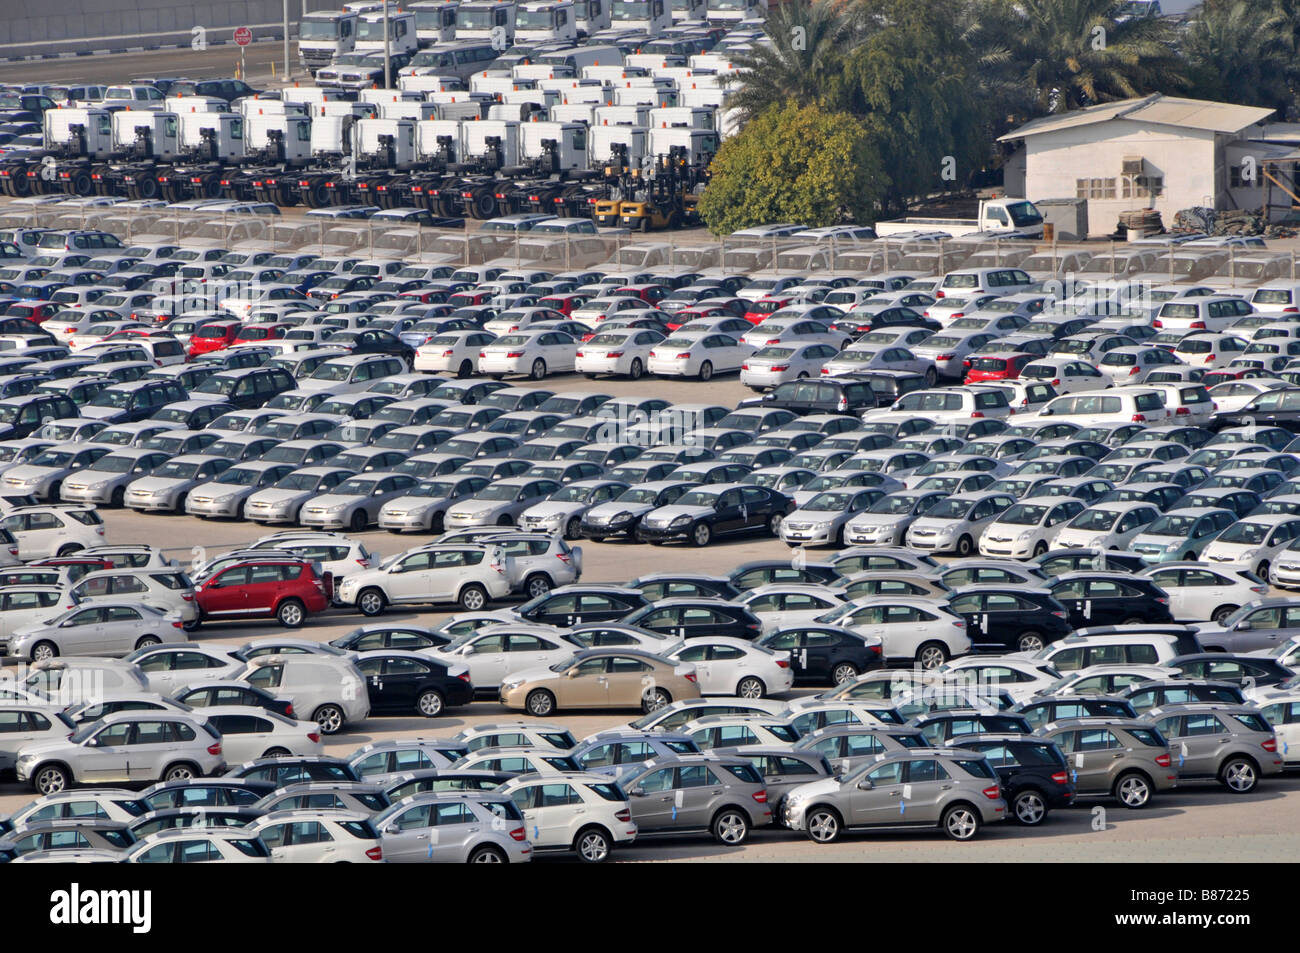 Abu Dhabi looking down on dockside storage of imported new cars and trucks awaiting distribution - Stock Image